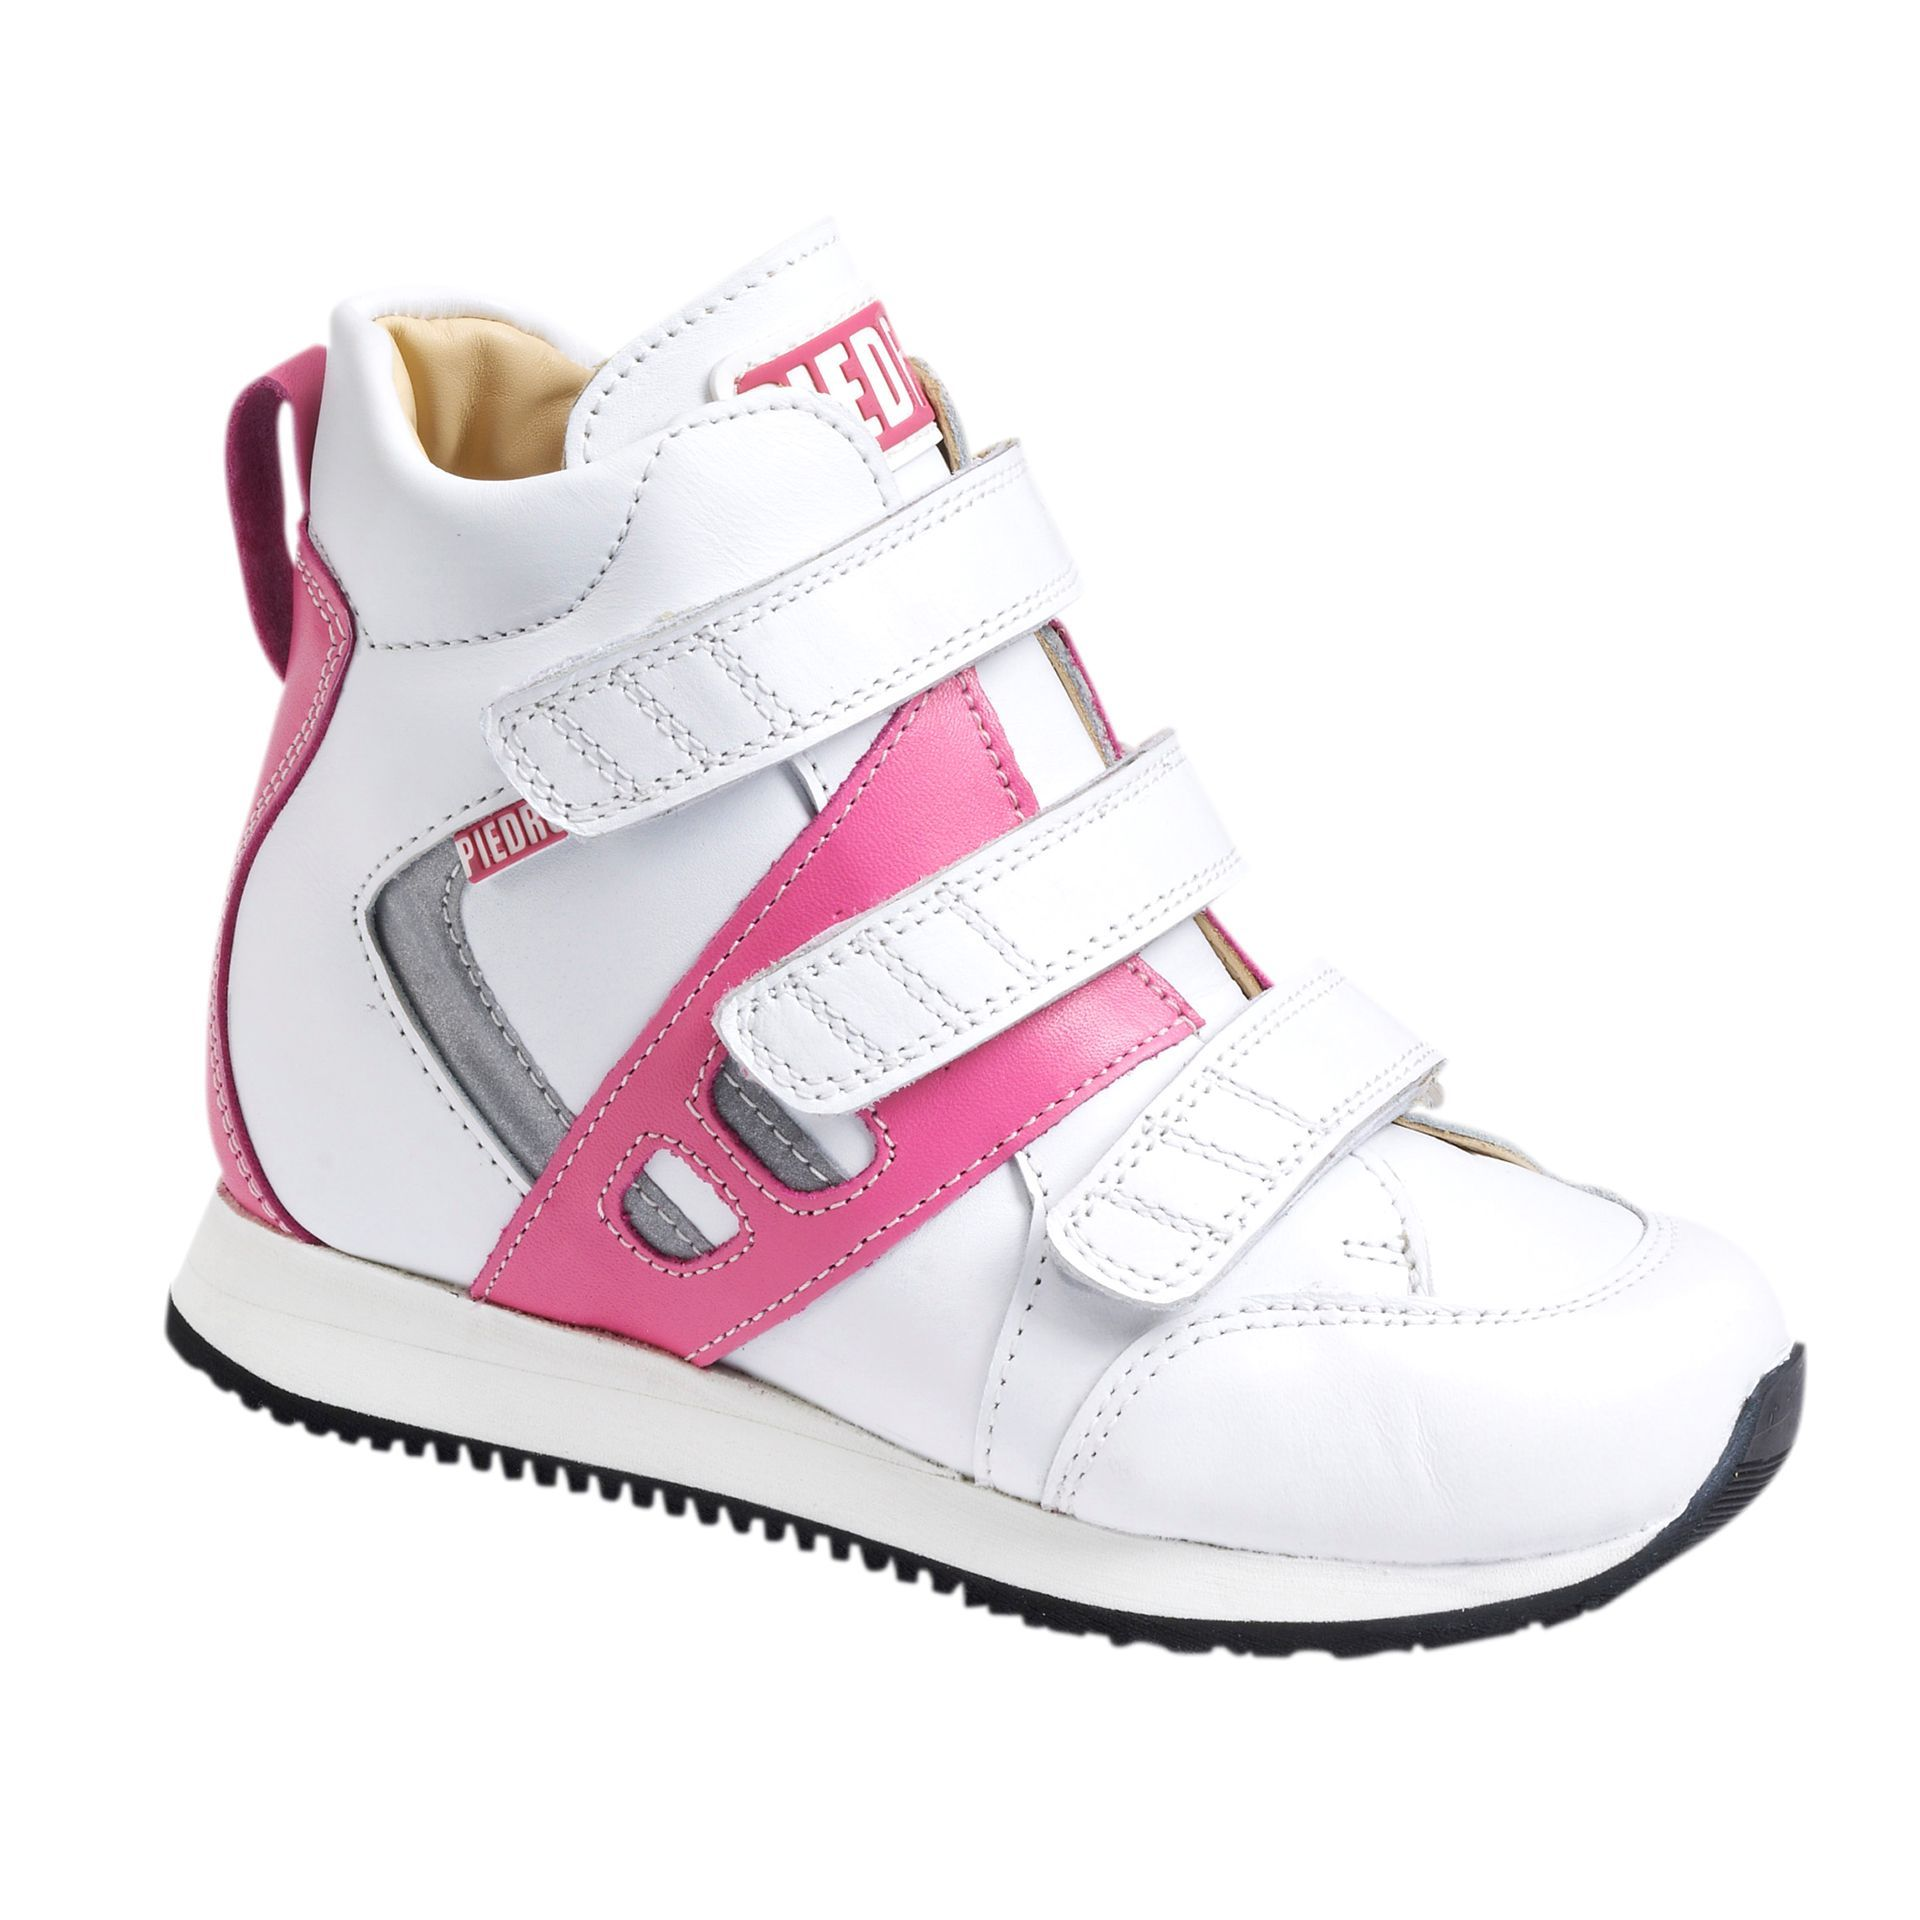 Closed toe medical walking shoe foot protection boot - Picture Of Sports Boots Casual Rehabilitation Velcro 2110